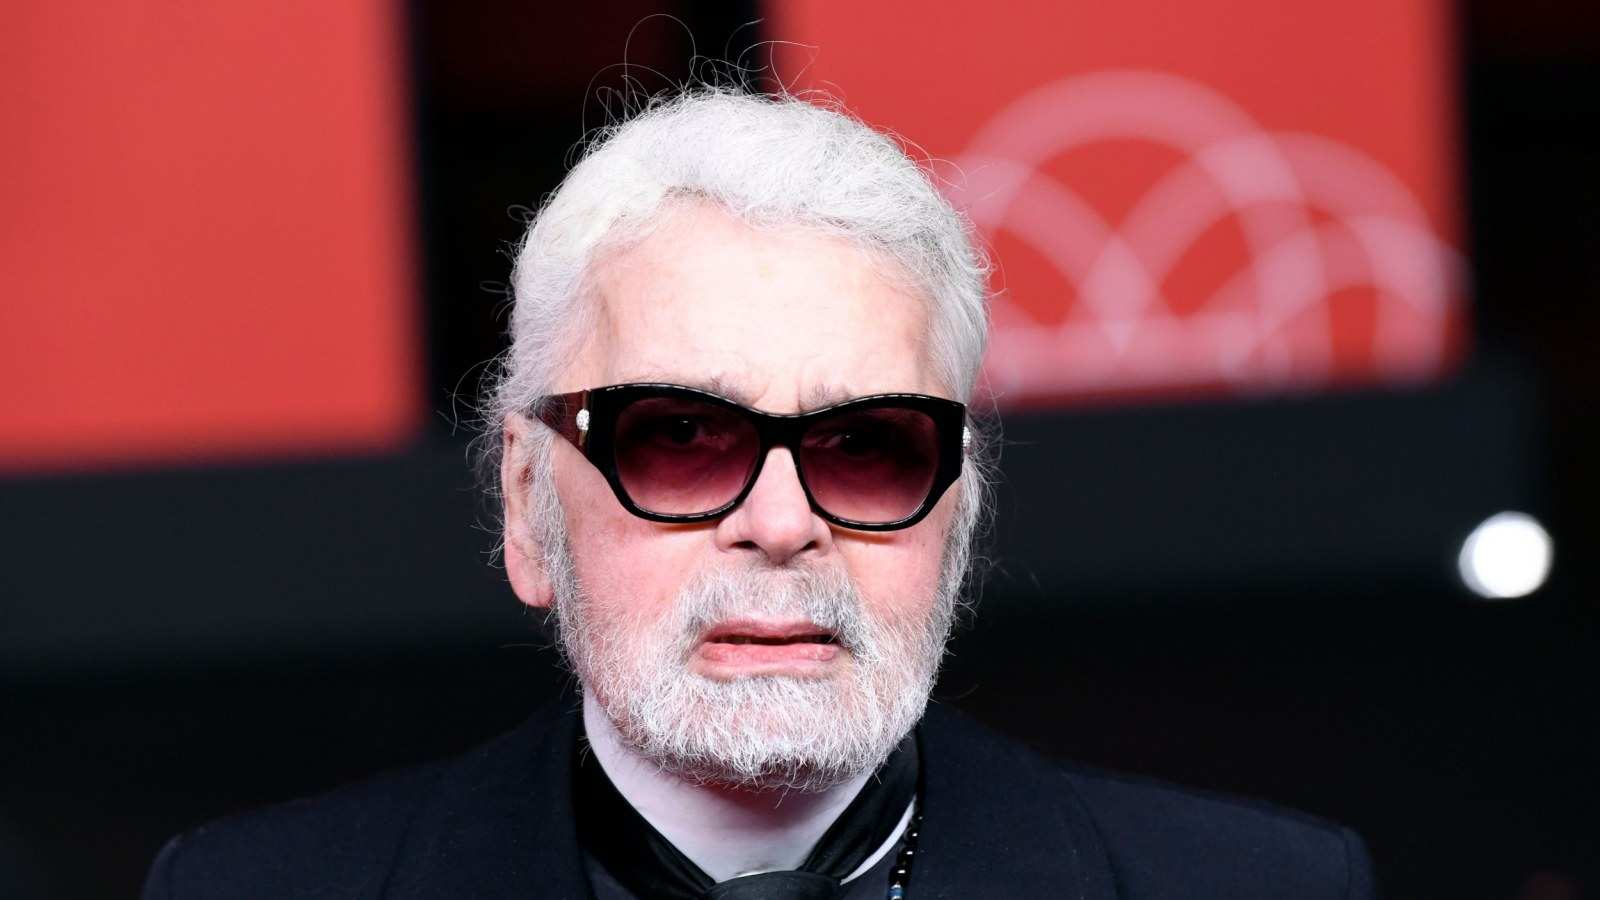 Karl Lagerfeld Net Worth One Of Fashion S Greatest Designers Made Chanel Relevant Again